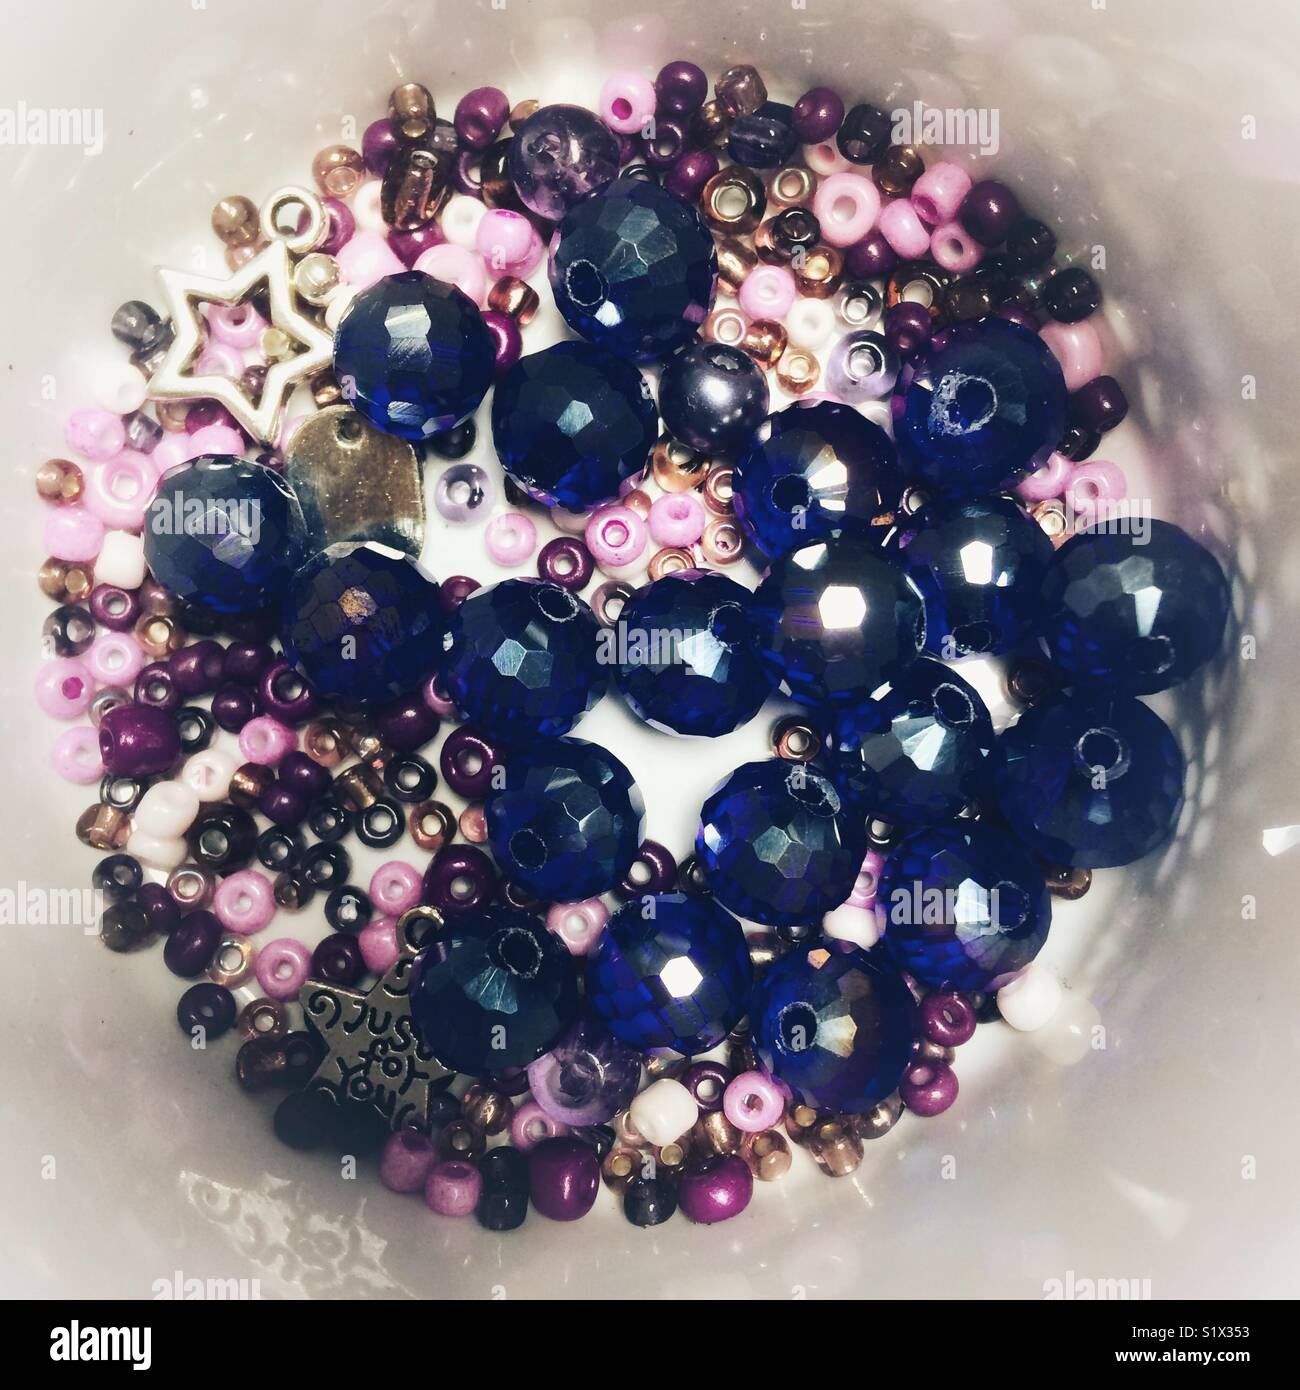 Variety of colourful beads for jewellery making and crafting. - Stock Image